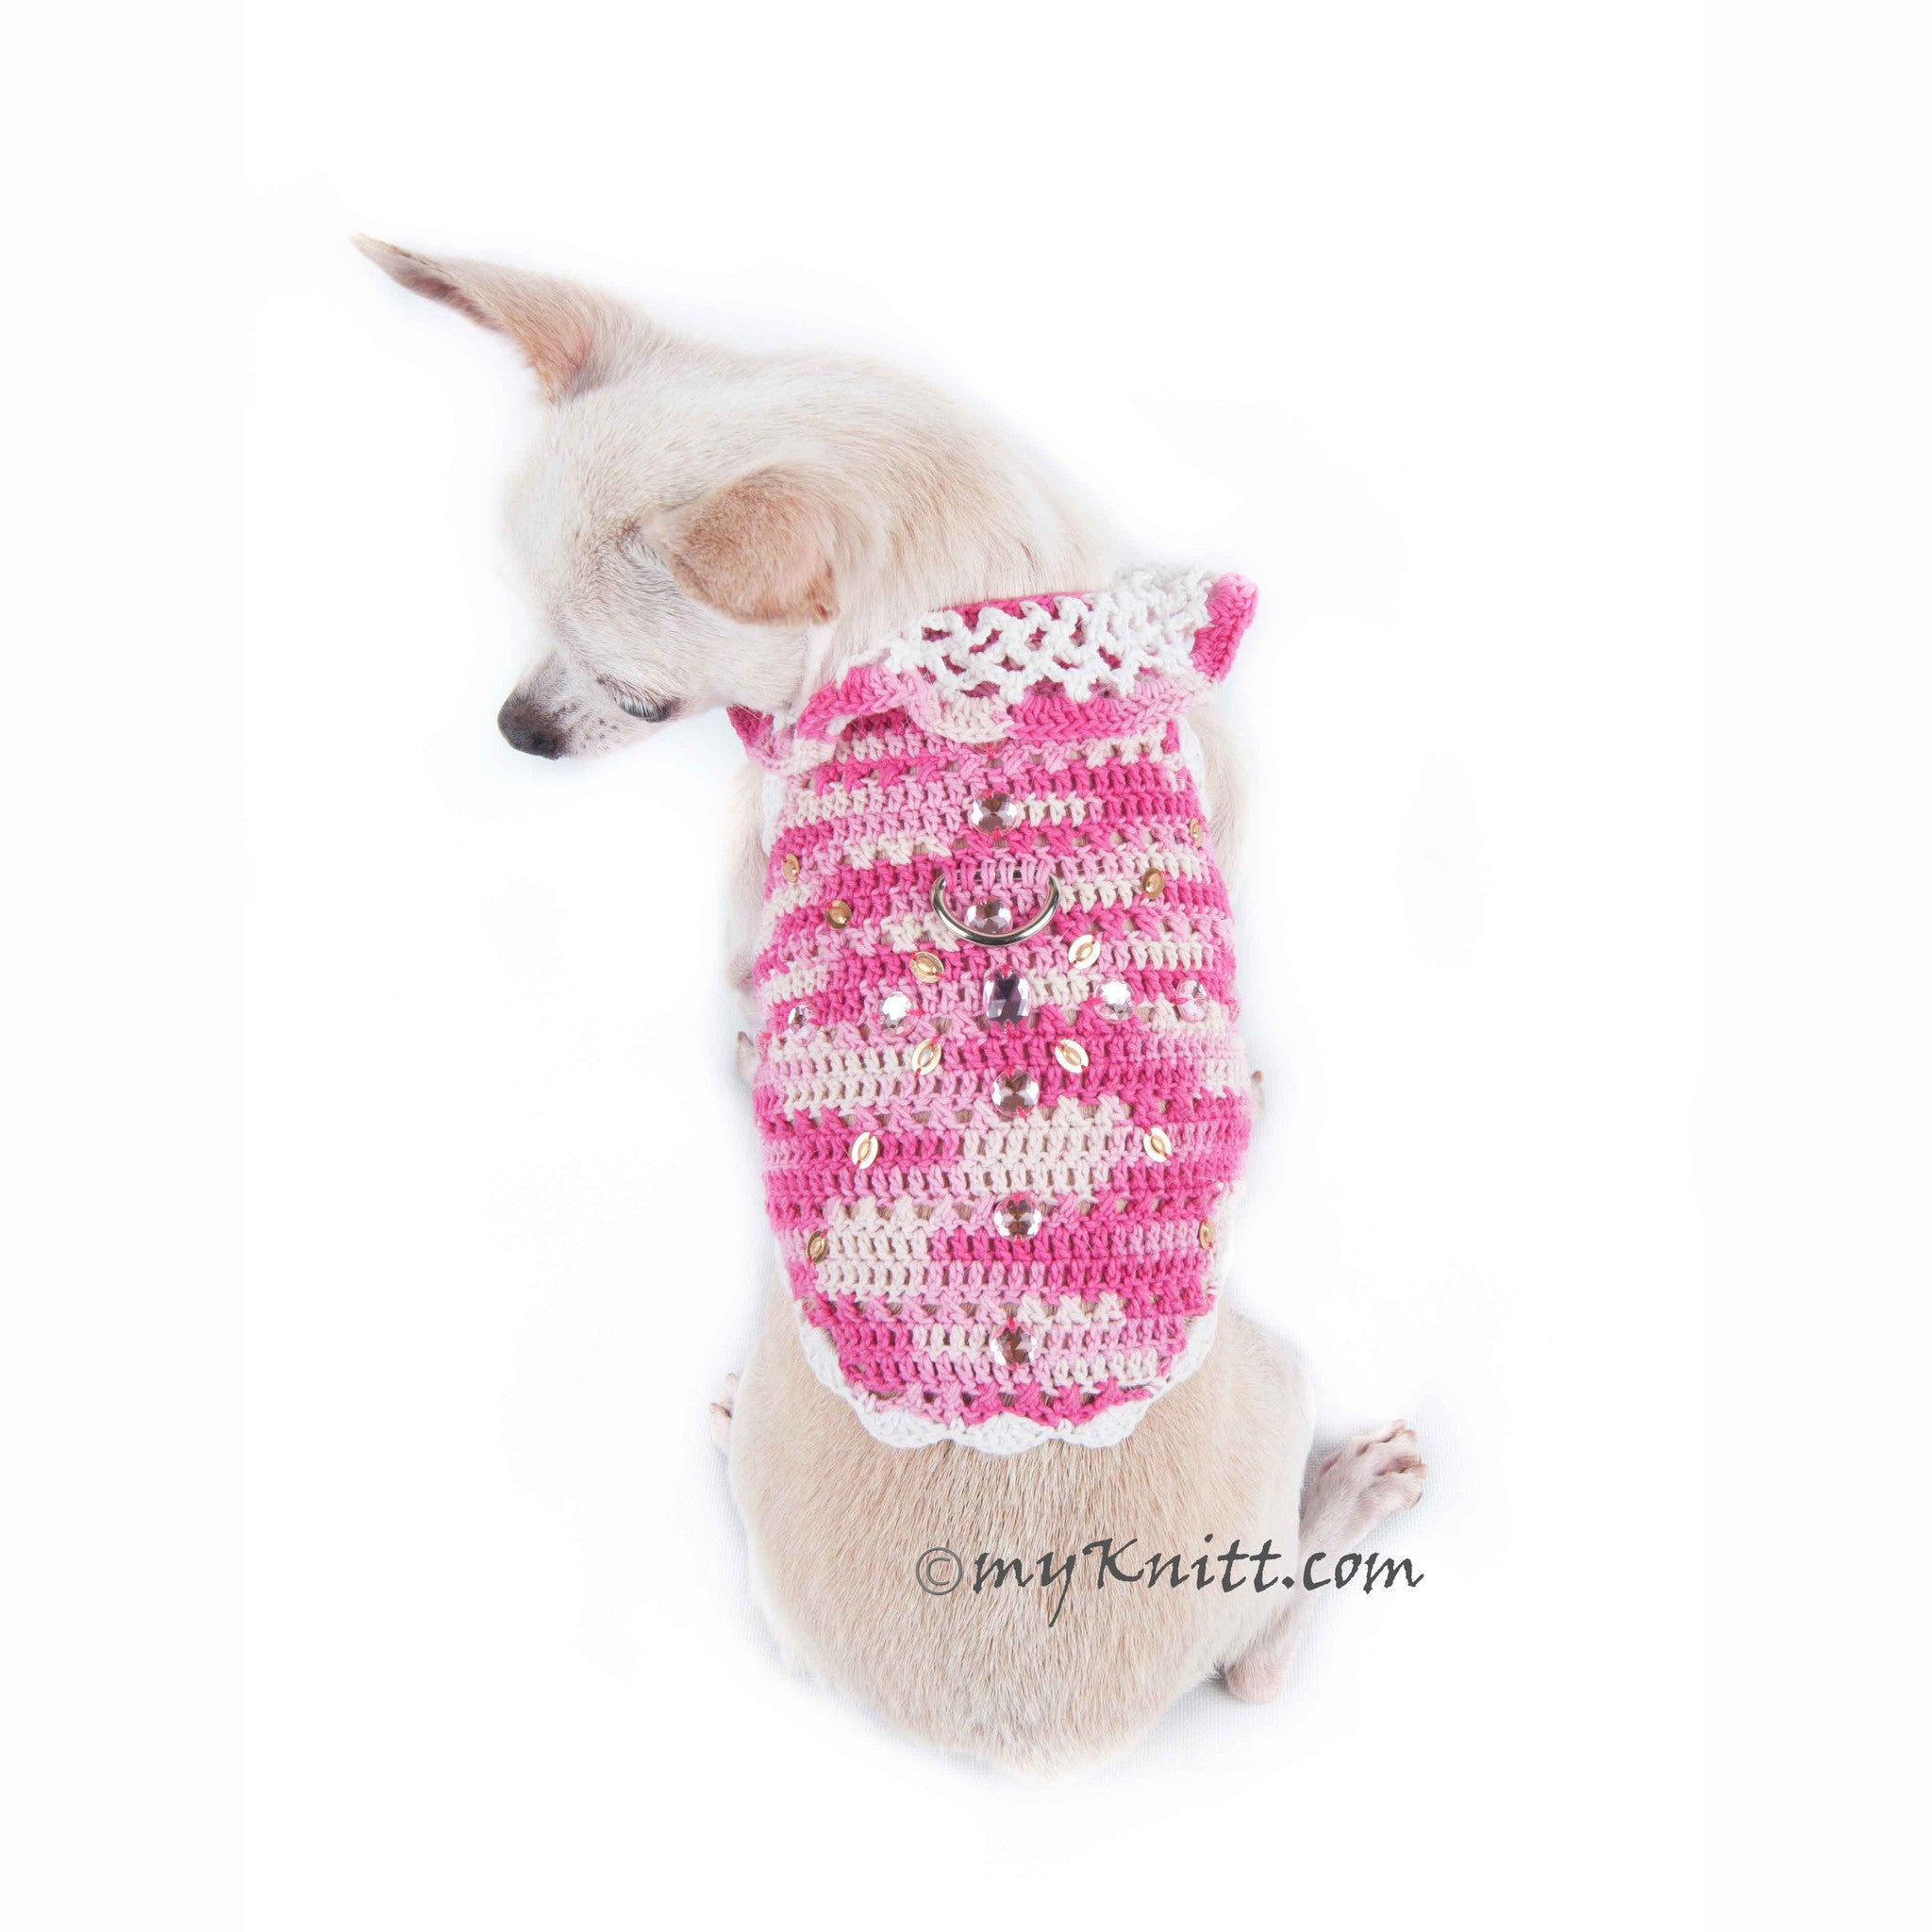 Rhinestones Pink Dog Harness Cotton Boho Chihuahua Clothes DK913 Myknitt